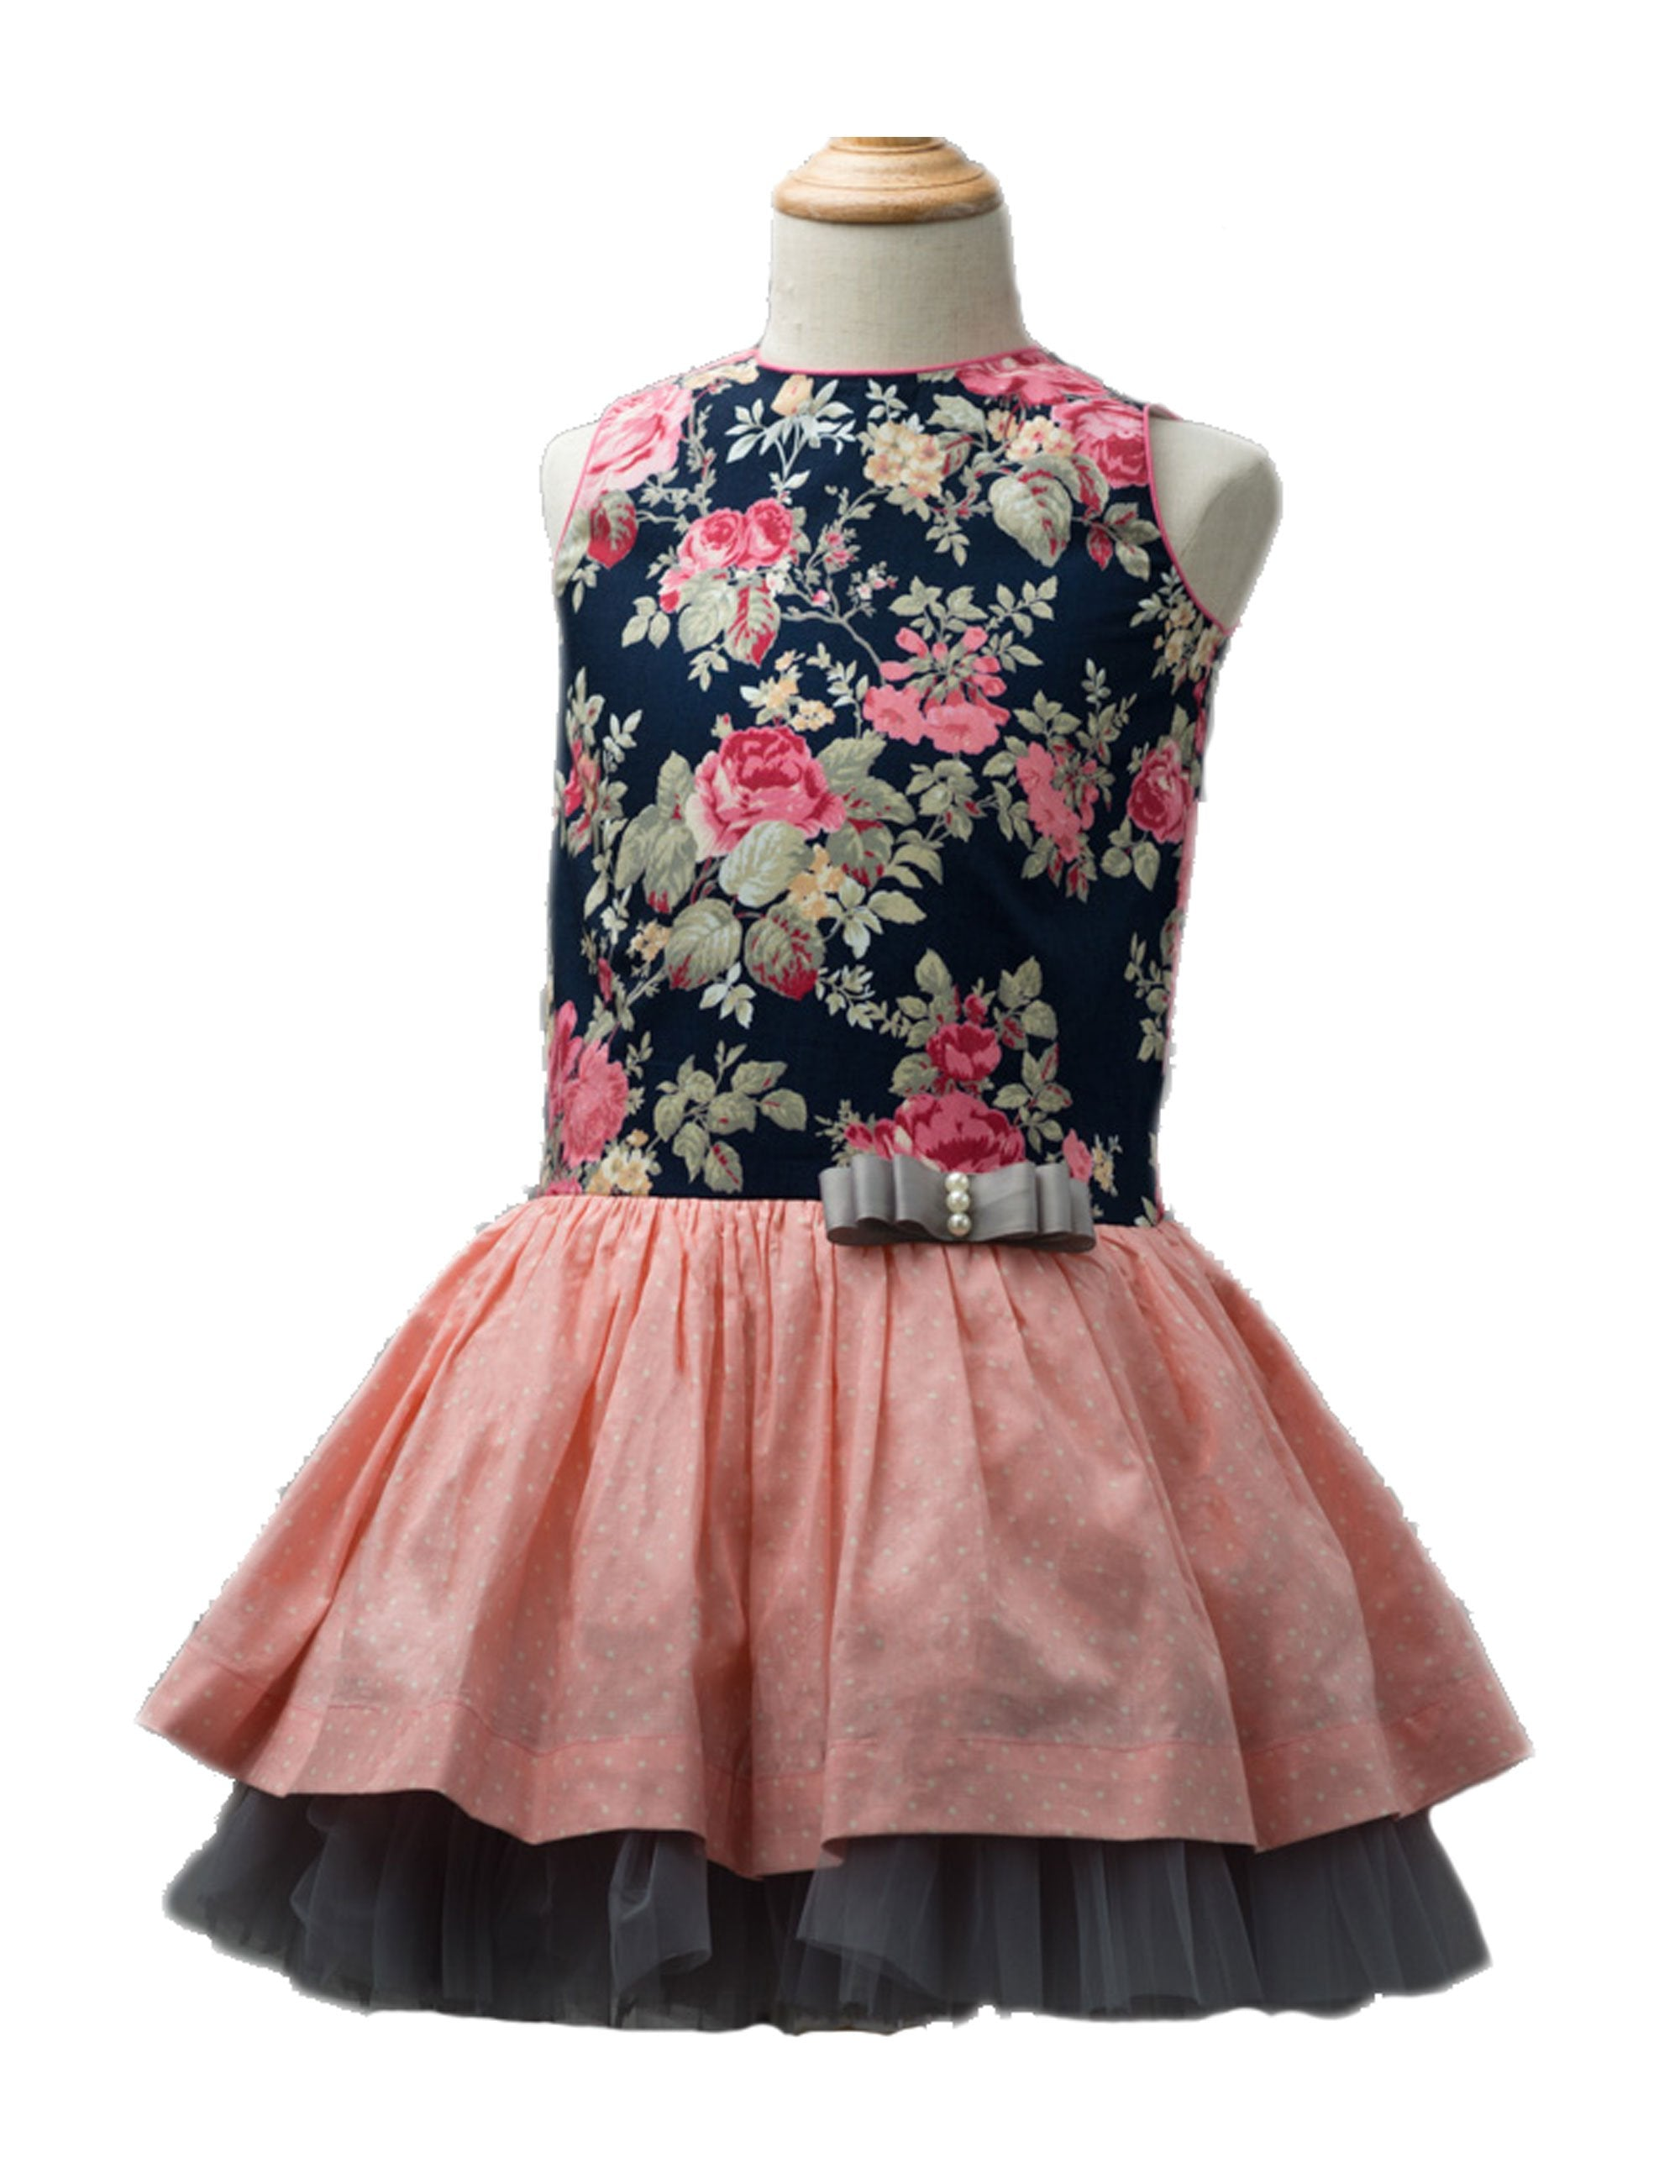 Festive Dress In Peach and Black Colour for Girls